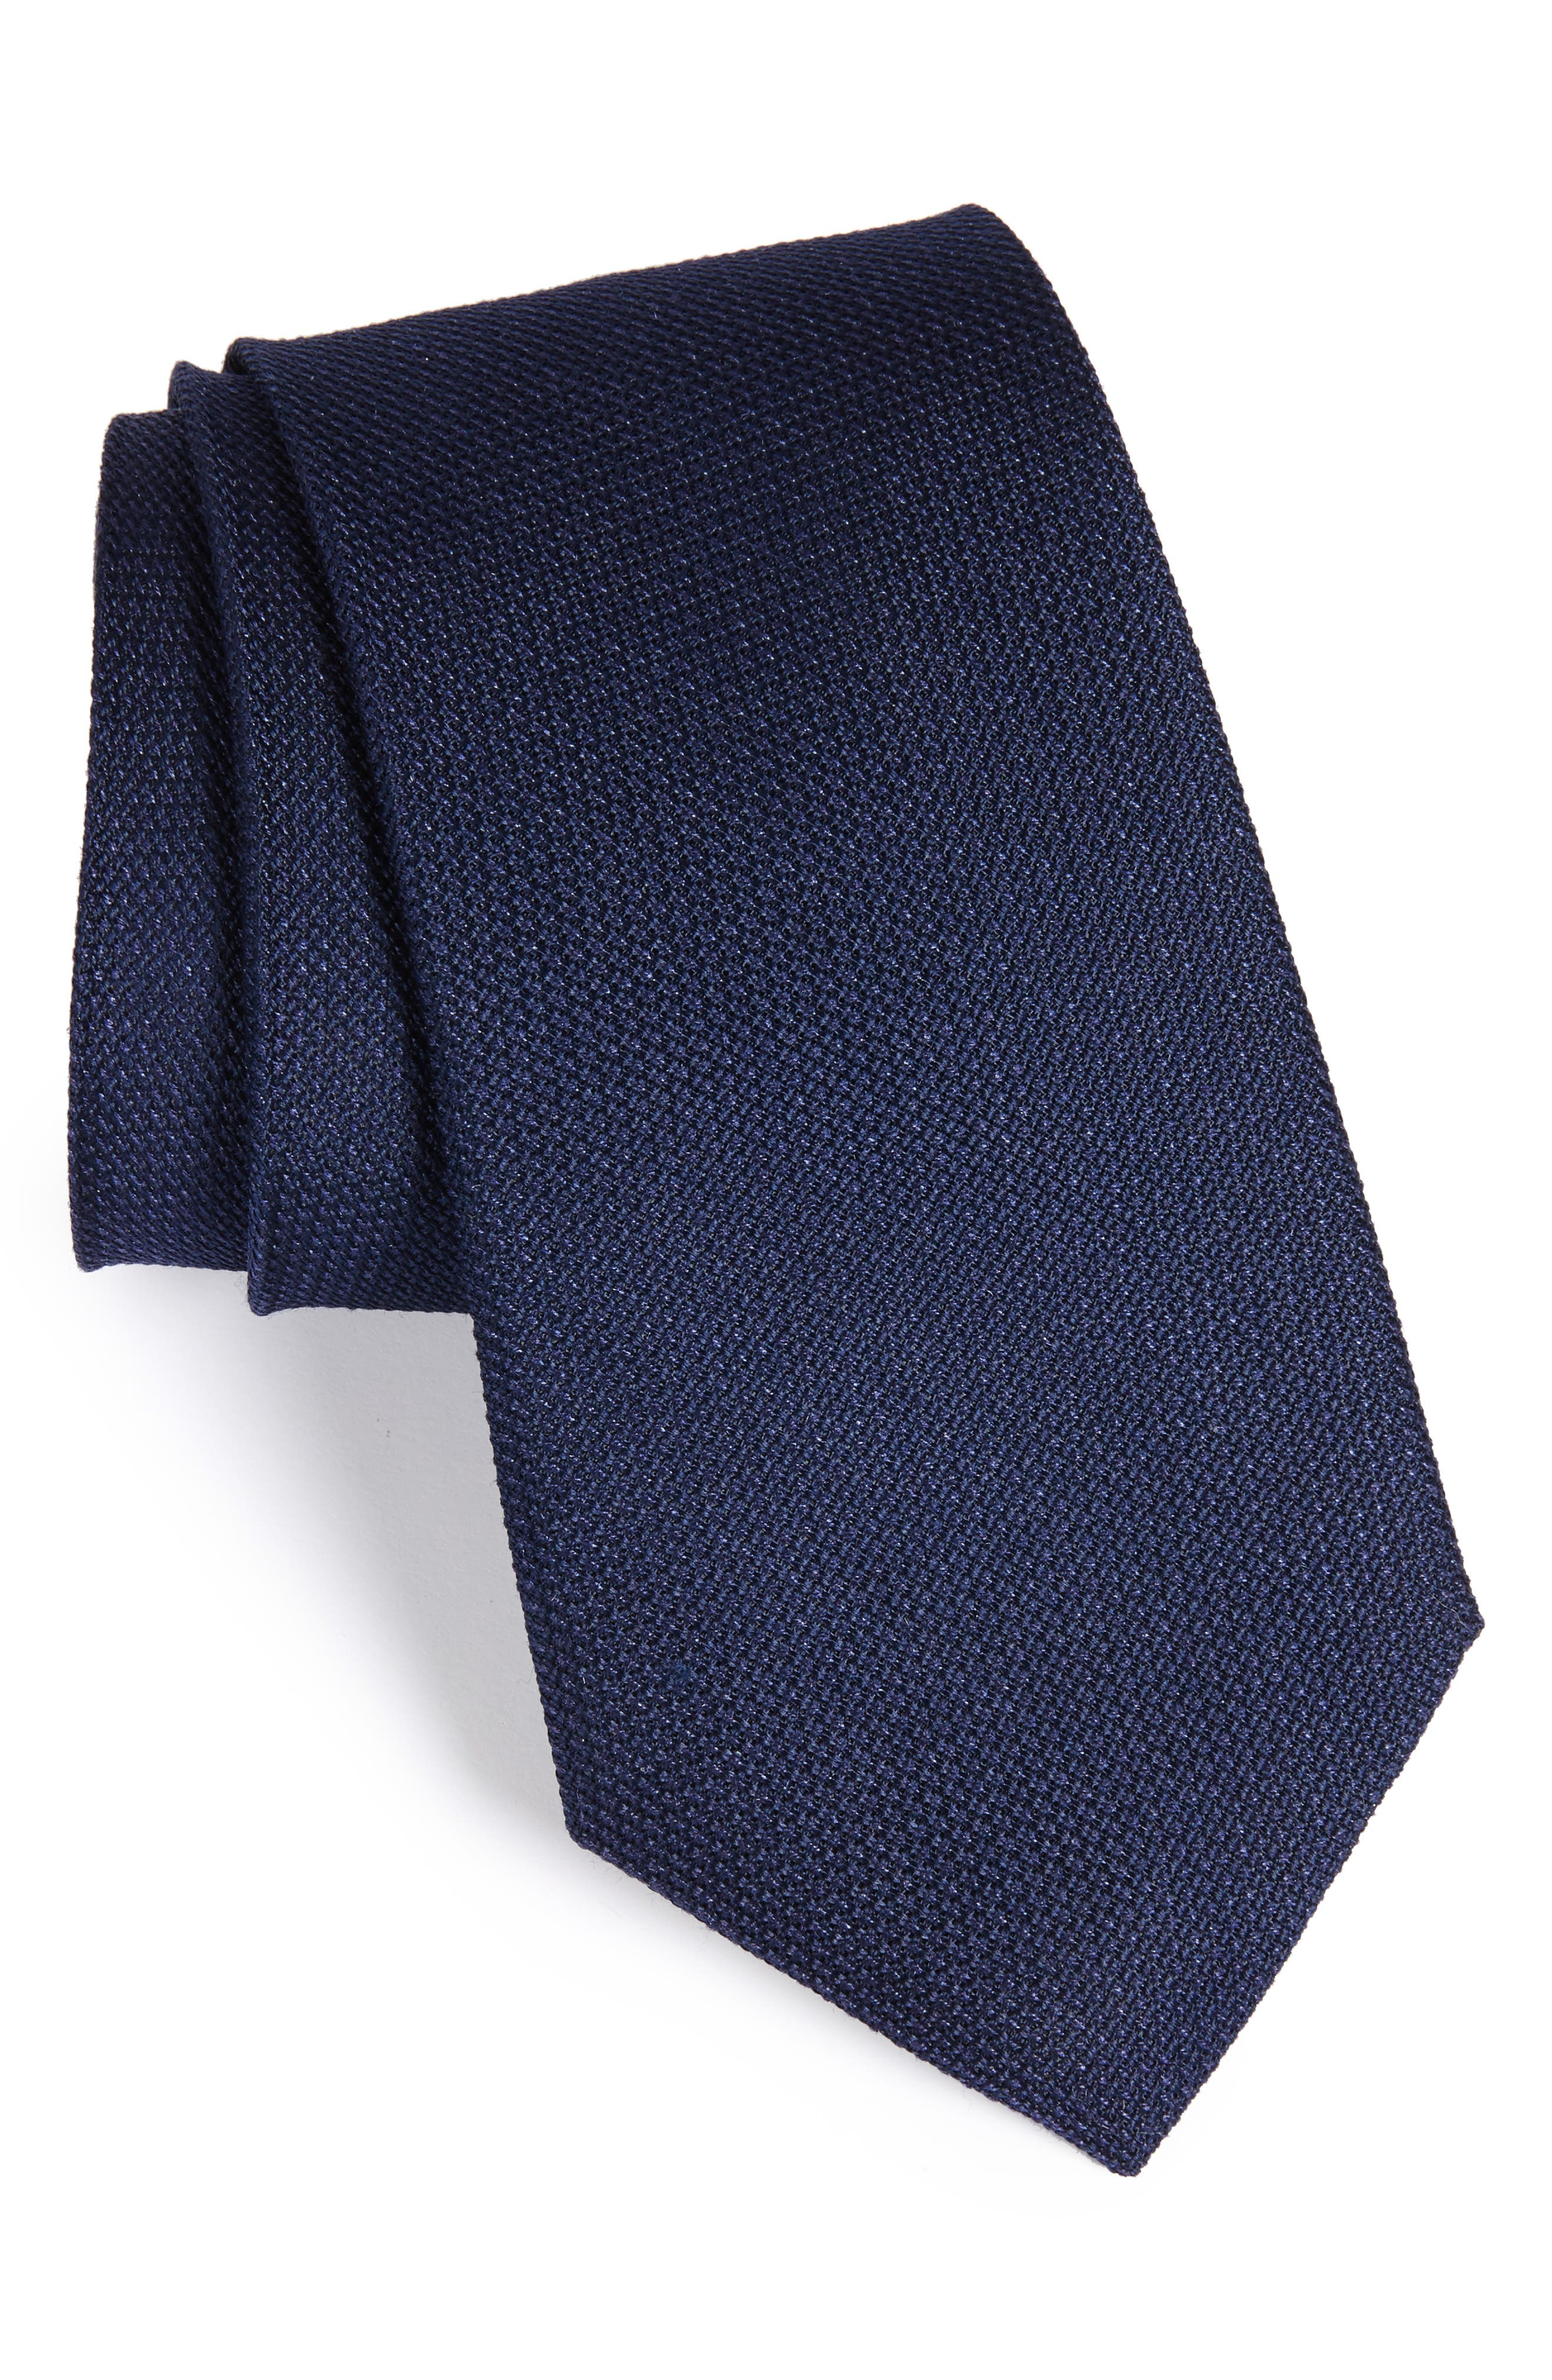 Nordstrom Men's Shop Grenadine Textured Silk Tie (X-Long)